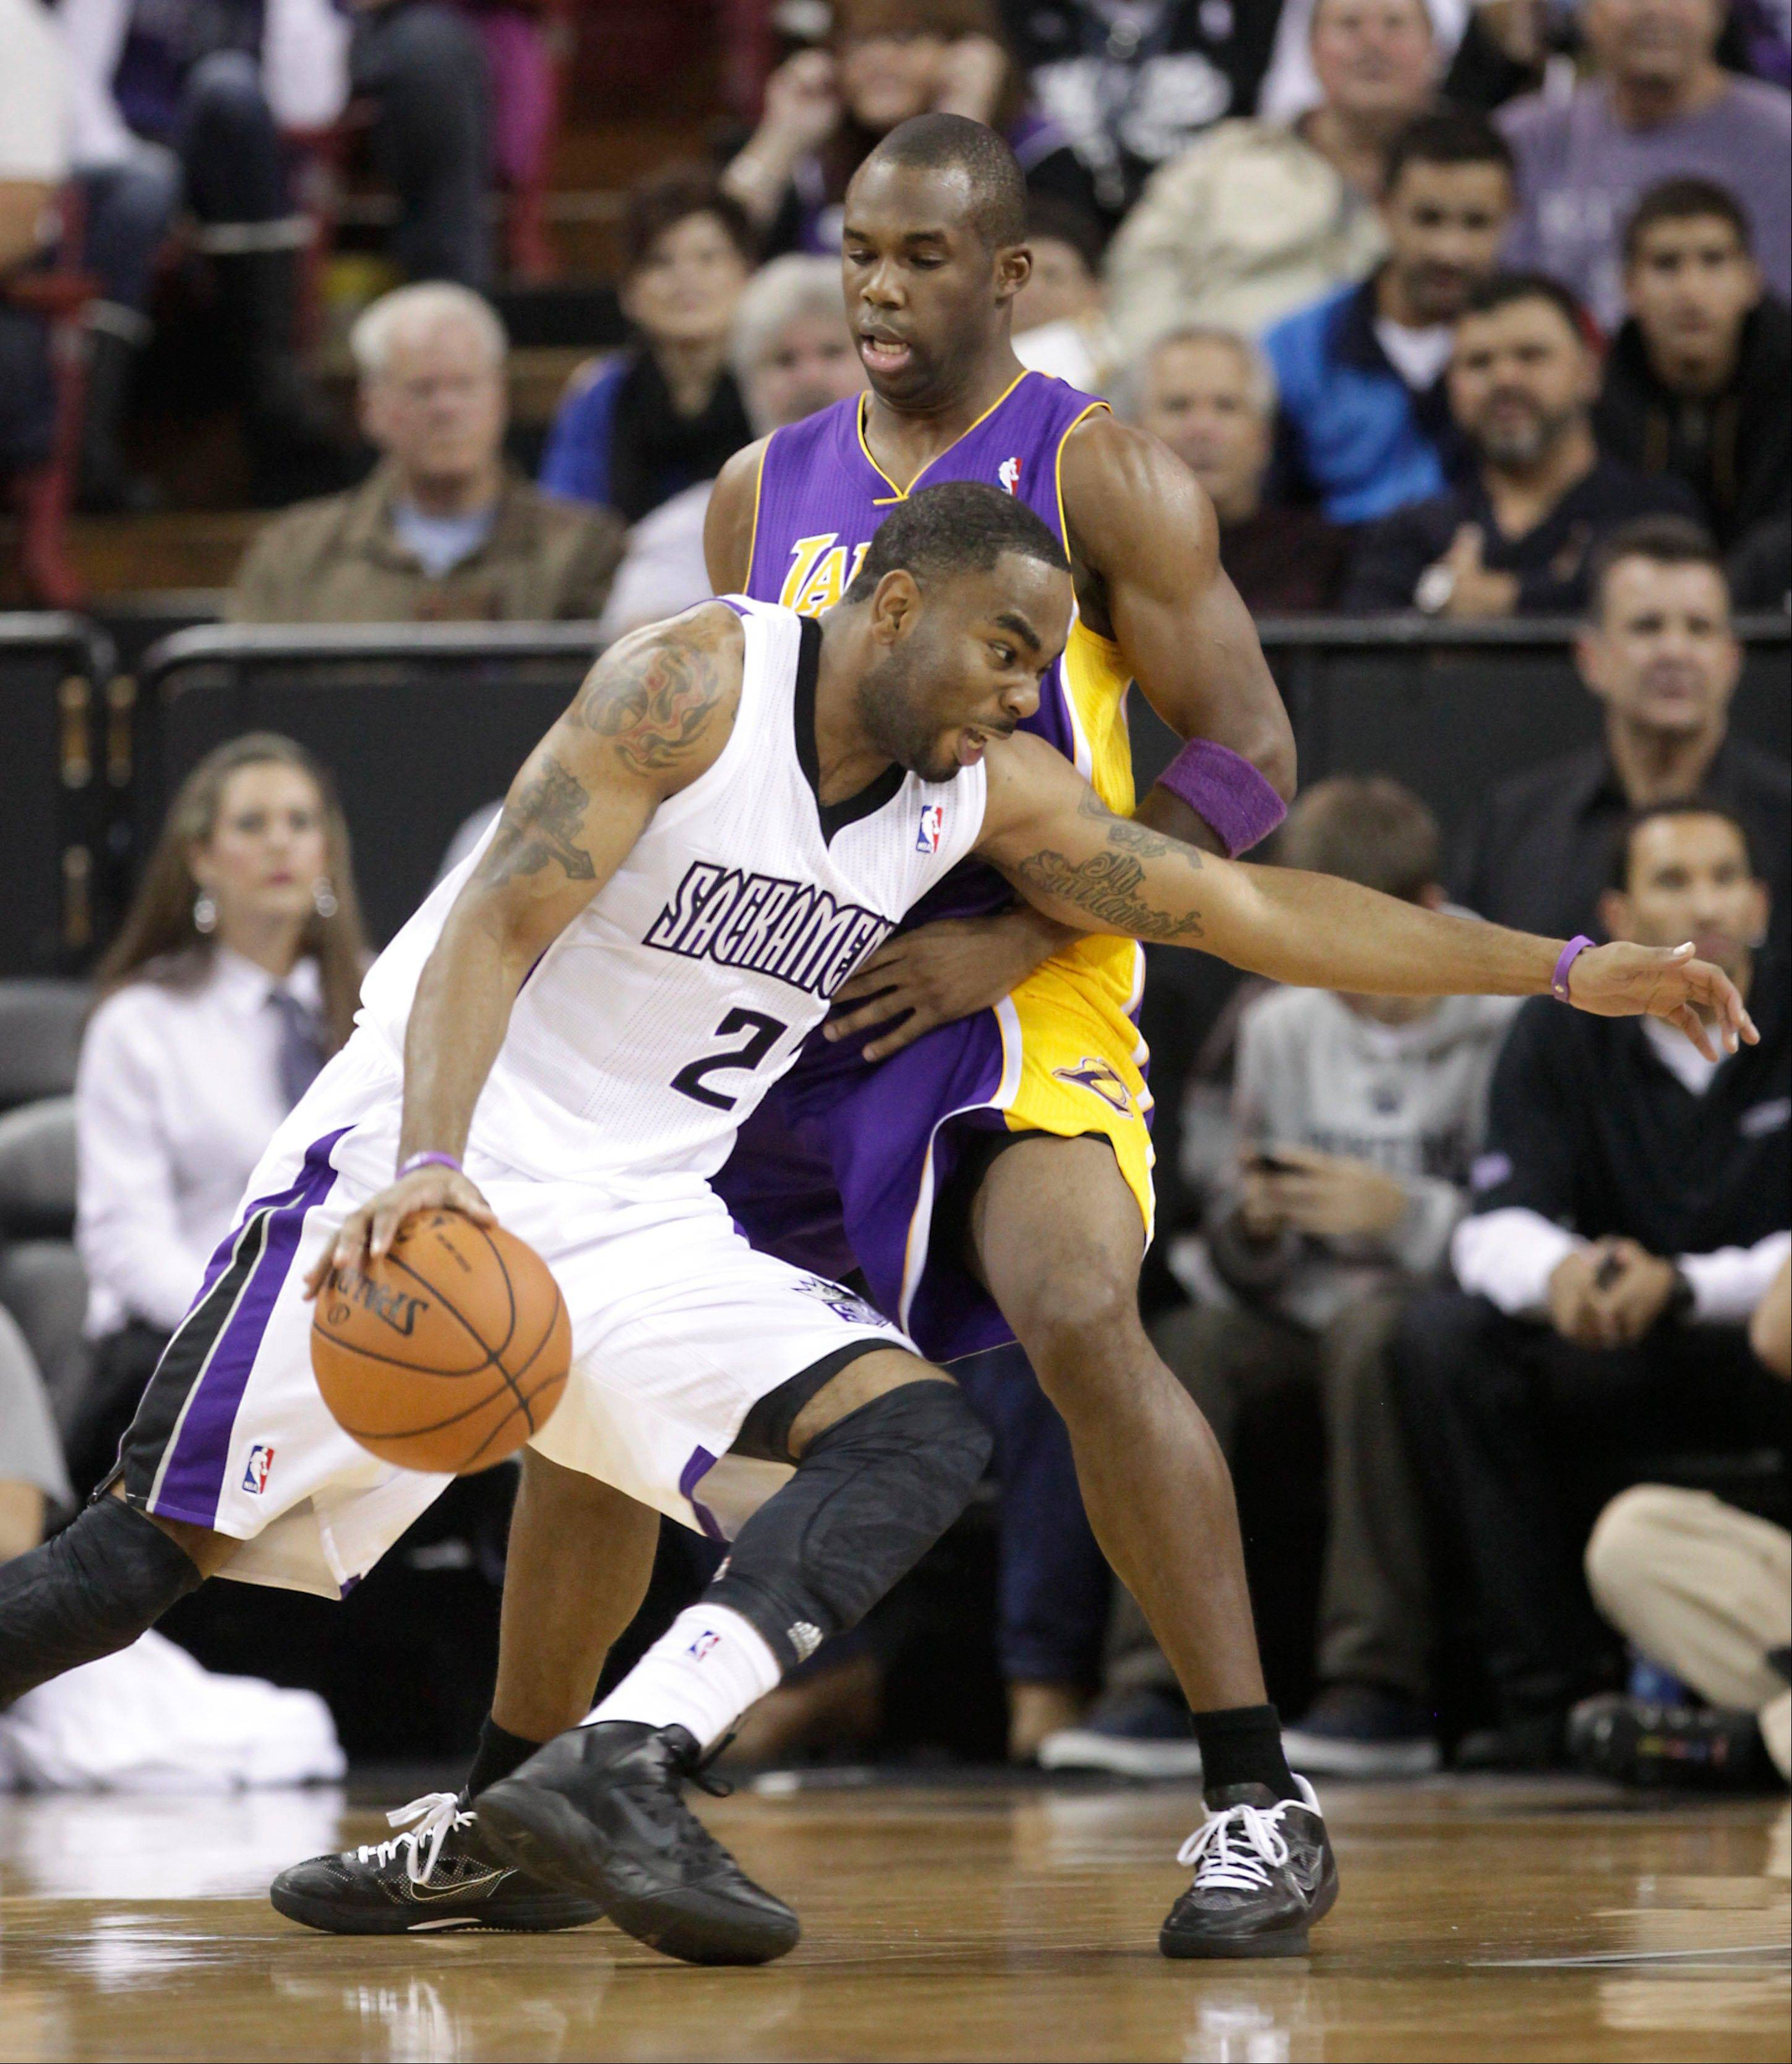 Kings guard Marcus Thornton drives against Los Angeles guard Jodie Meeks during the first quarter Wednesday in Sacramento, Calif.